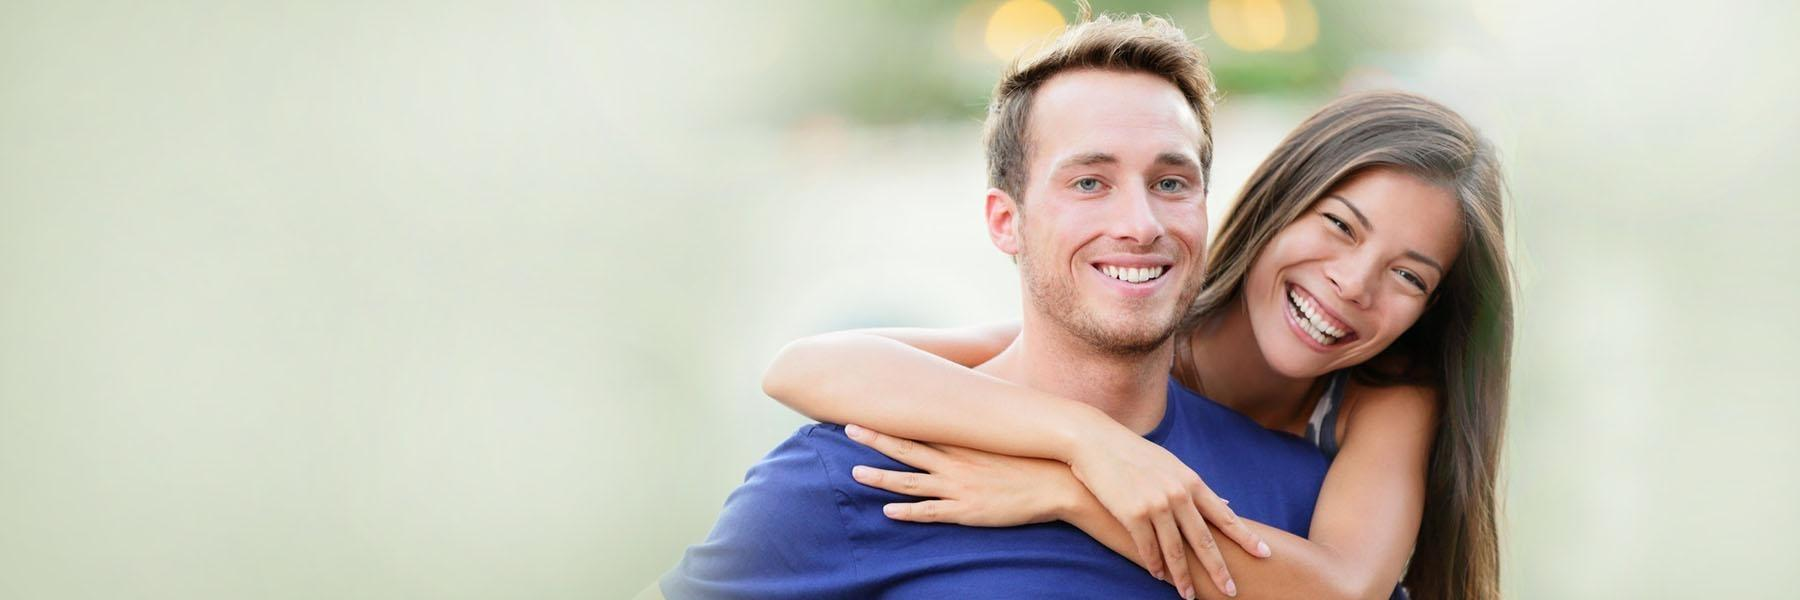 Smiling Couple | Counseling Denver CO